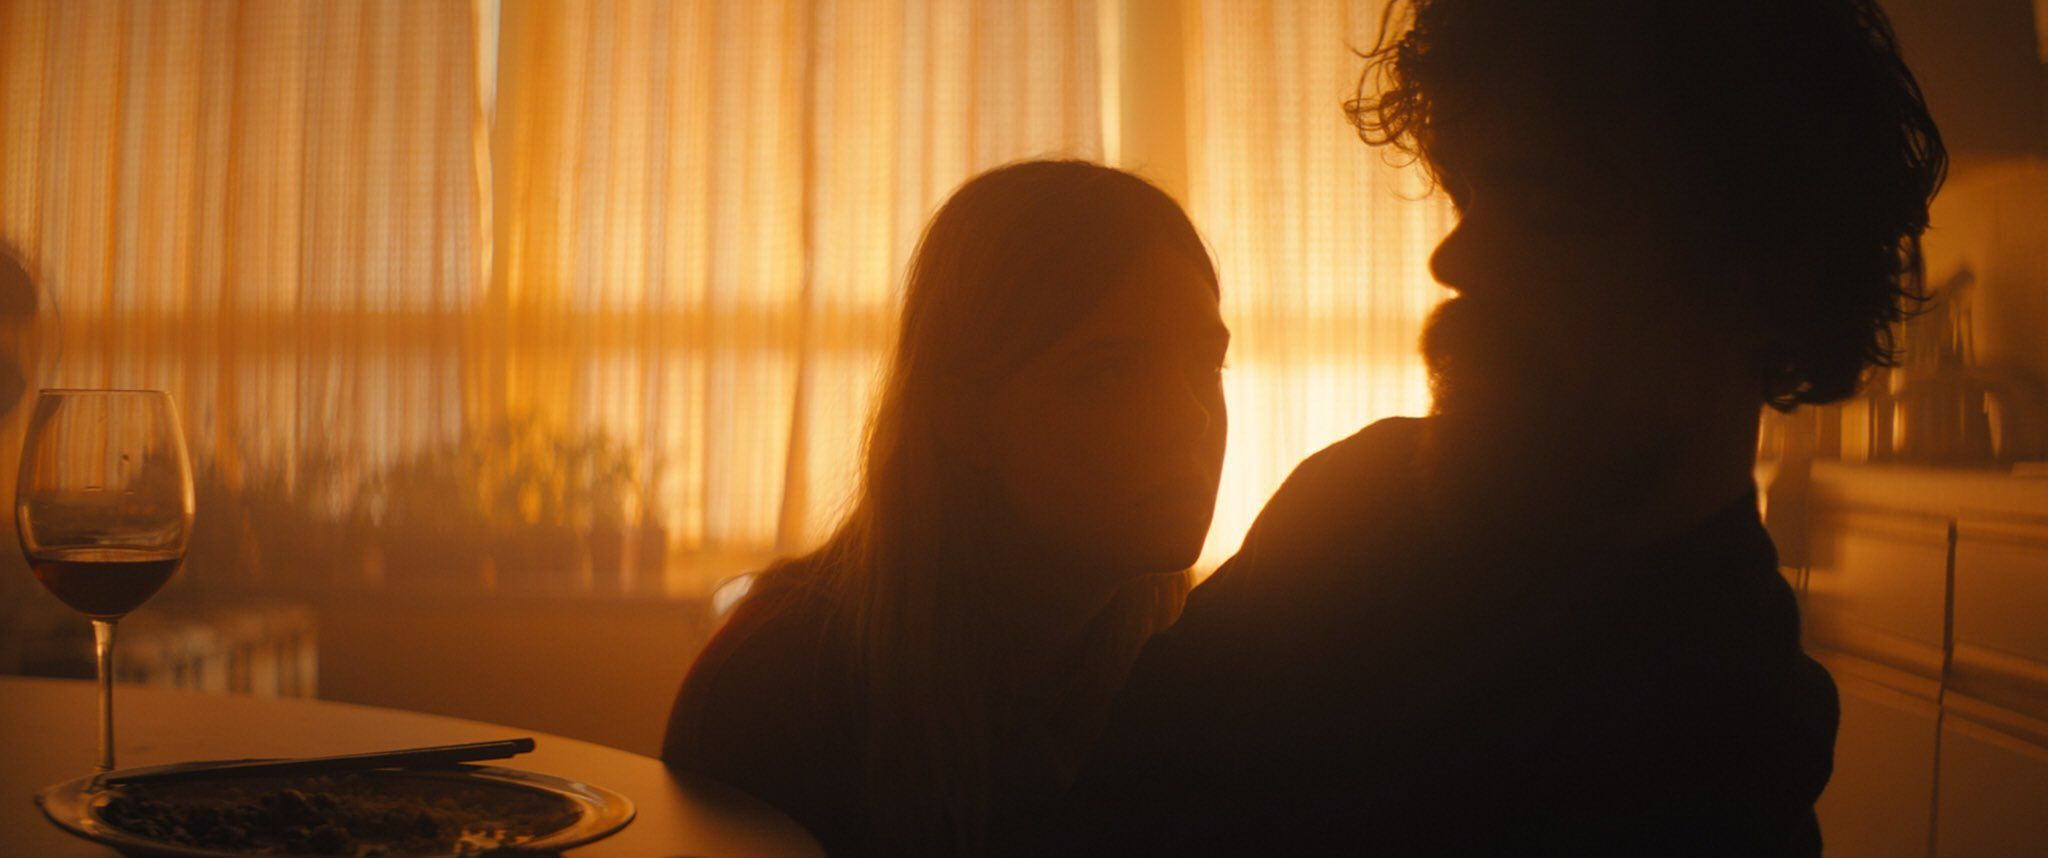 elle fanning, peter dinklage, i think we're alone now, still